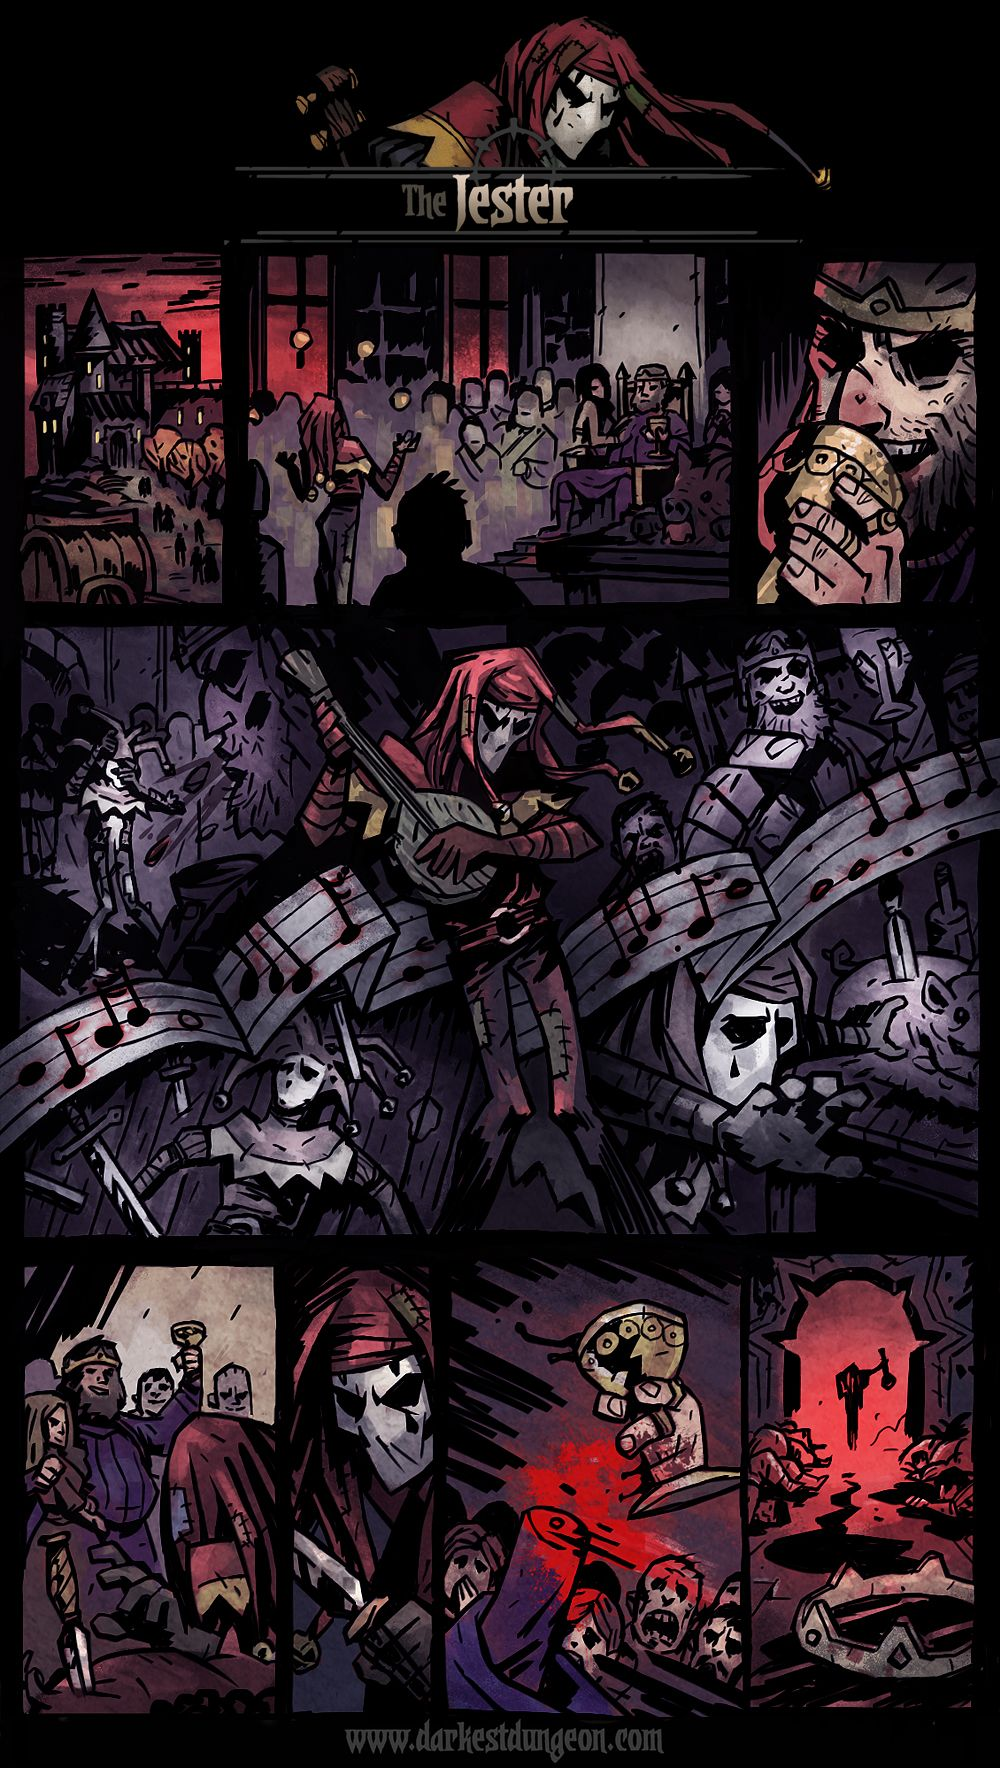 Darkest Dungeon Presents: The Jester | Darkest Dungeon | Darkest